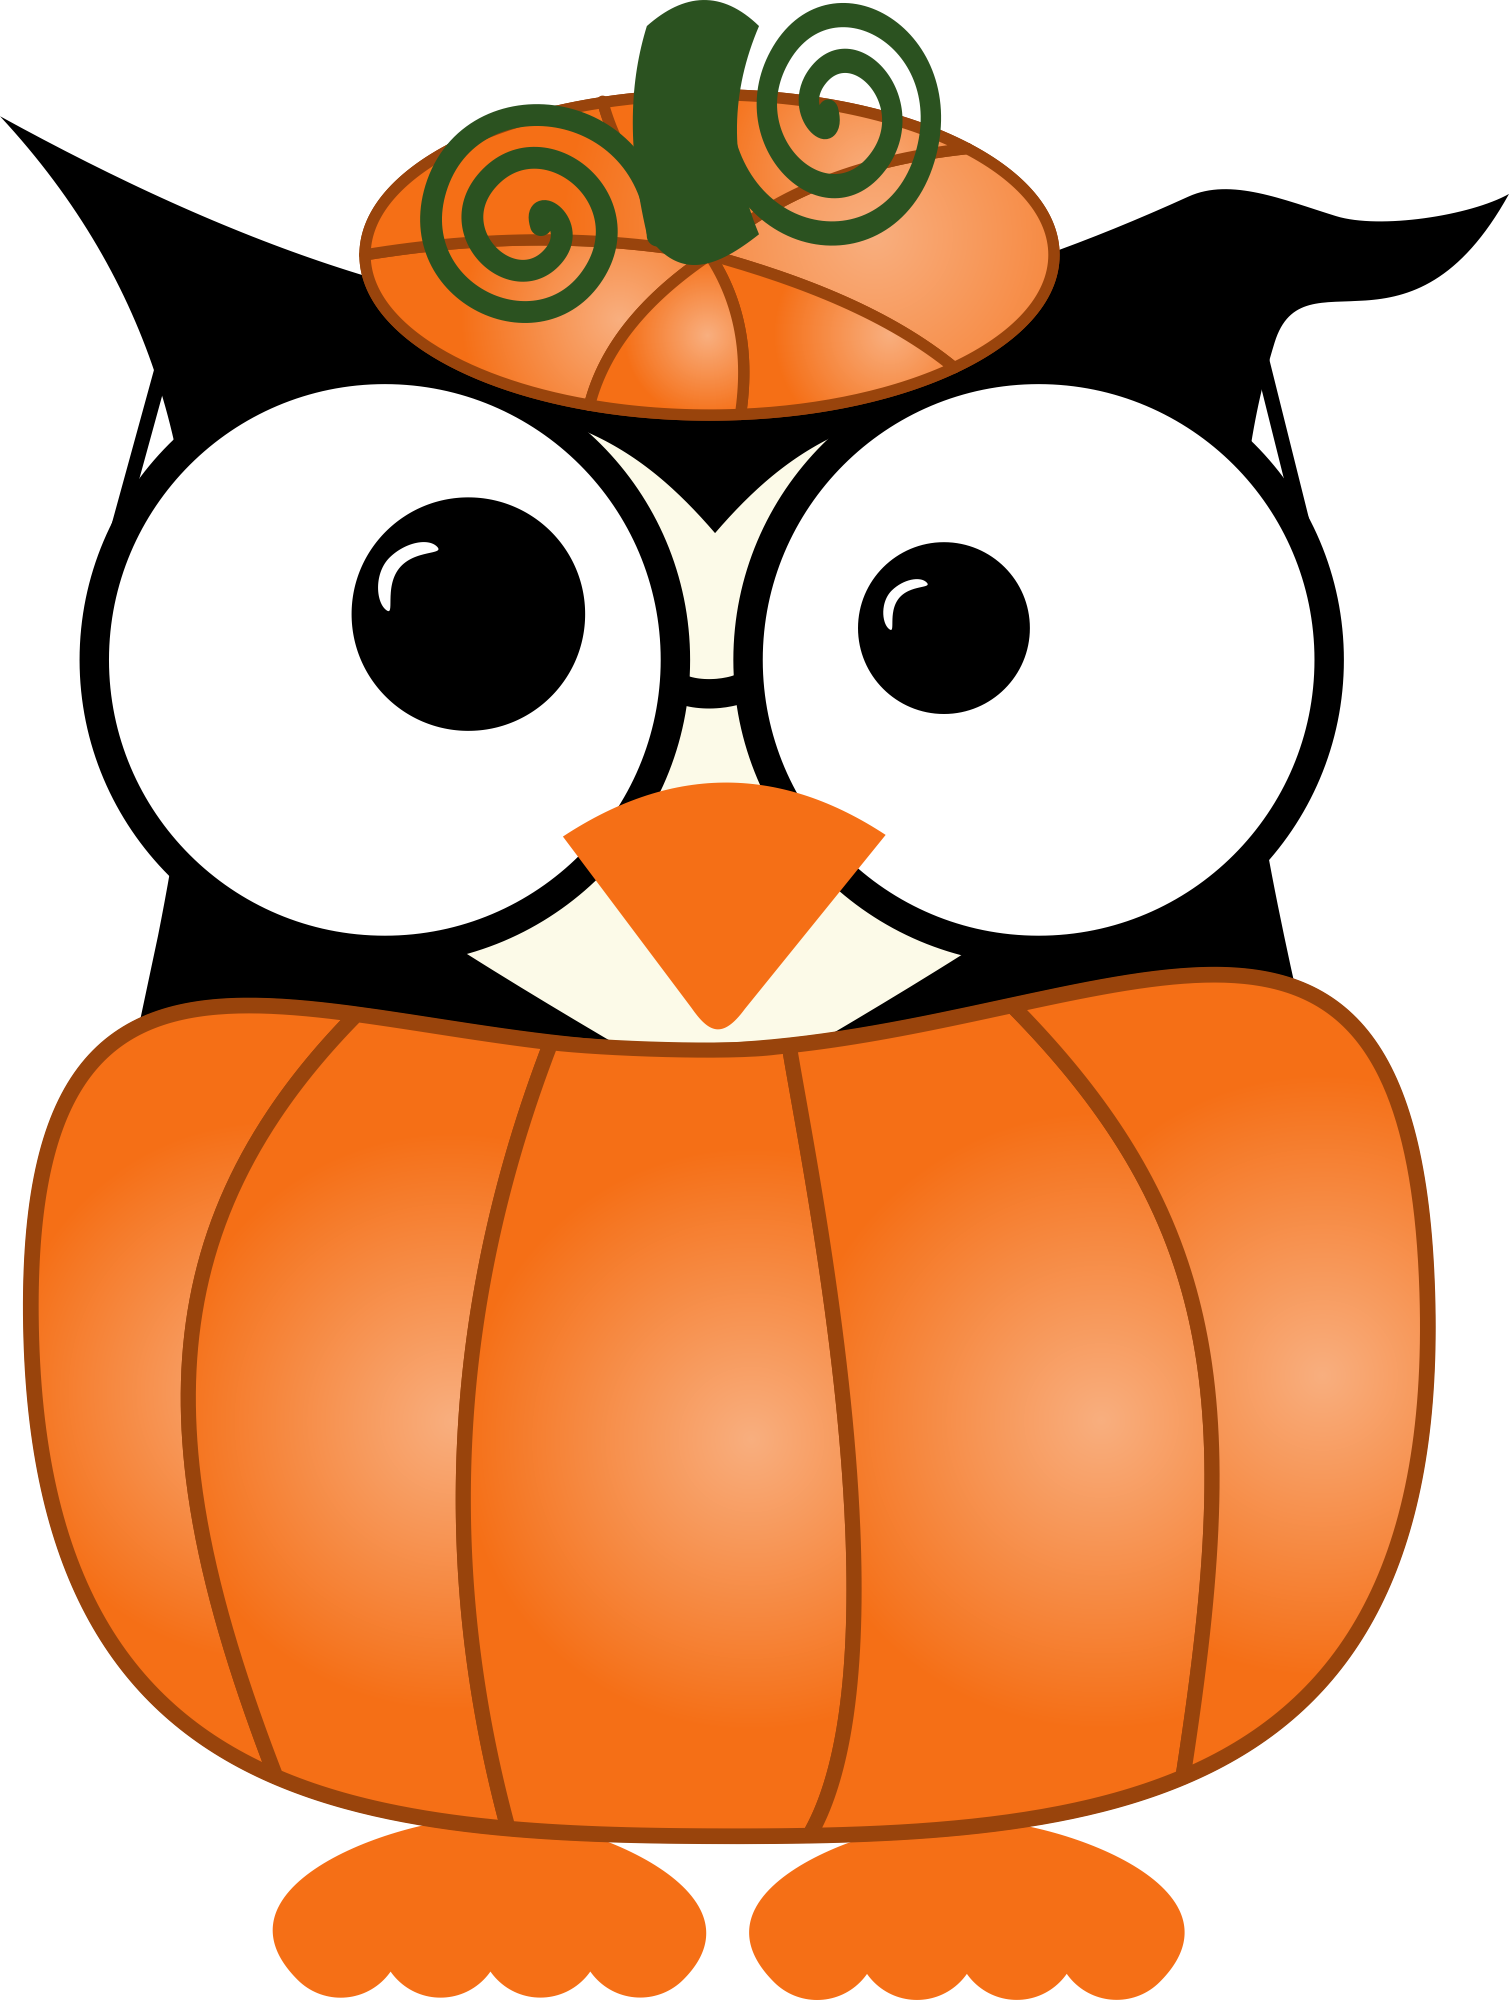 Whimsical halloween clipart image black and white download Photo by @daniellemoraesfalcao - Minus | Buhos | Pinterest | Owl ... image black and white download